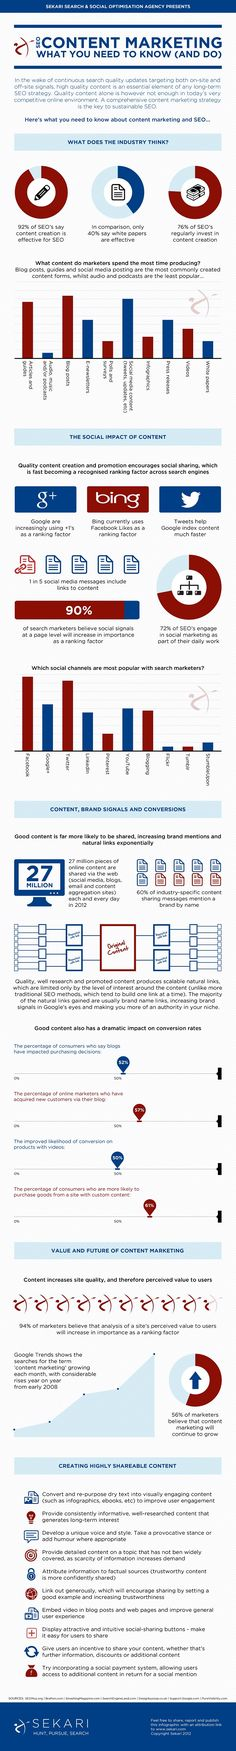 Content Marketing: What To Know & Do To Master The Skill [Infographic]